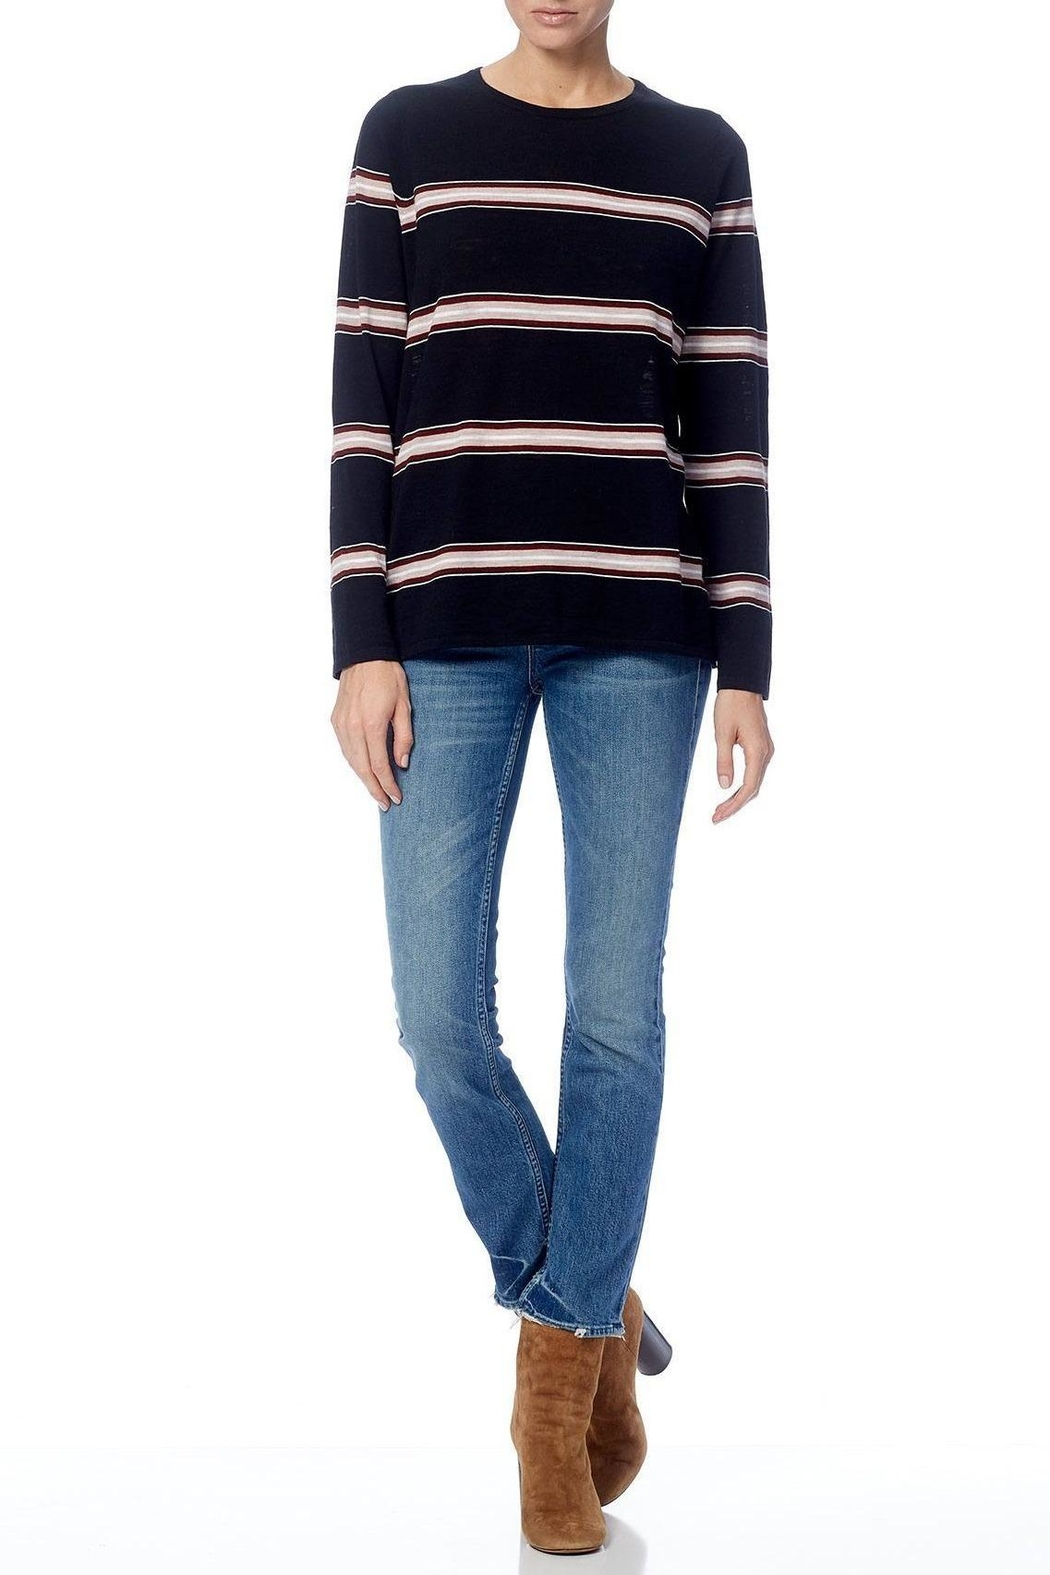 360 Cashmere Brianne Sweater - Side Cropped Image